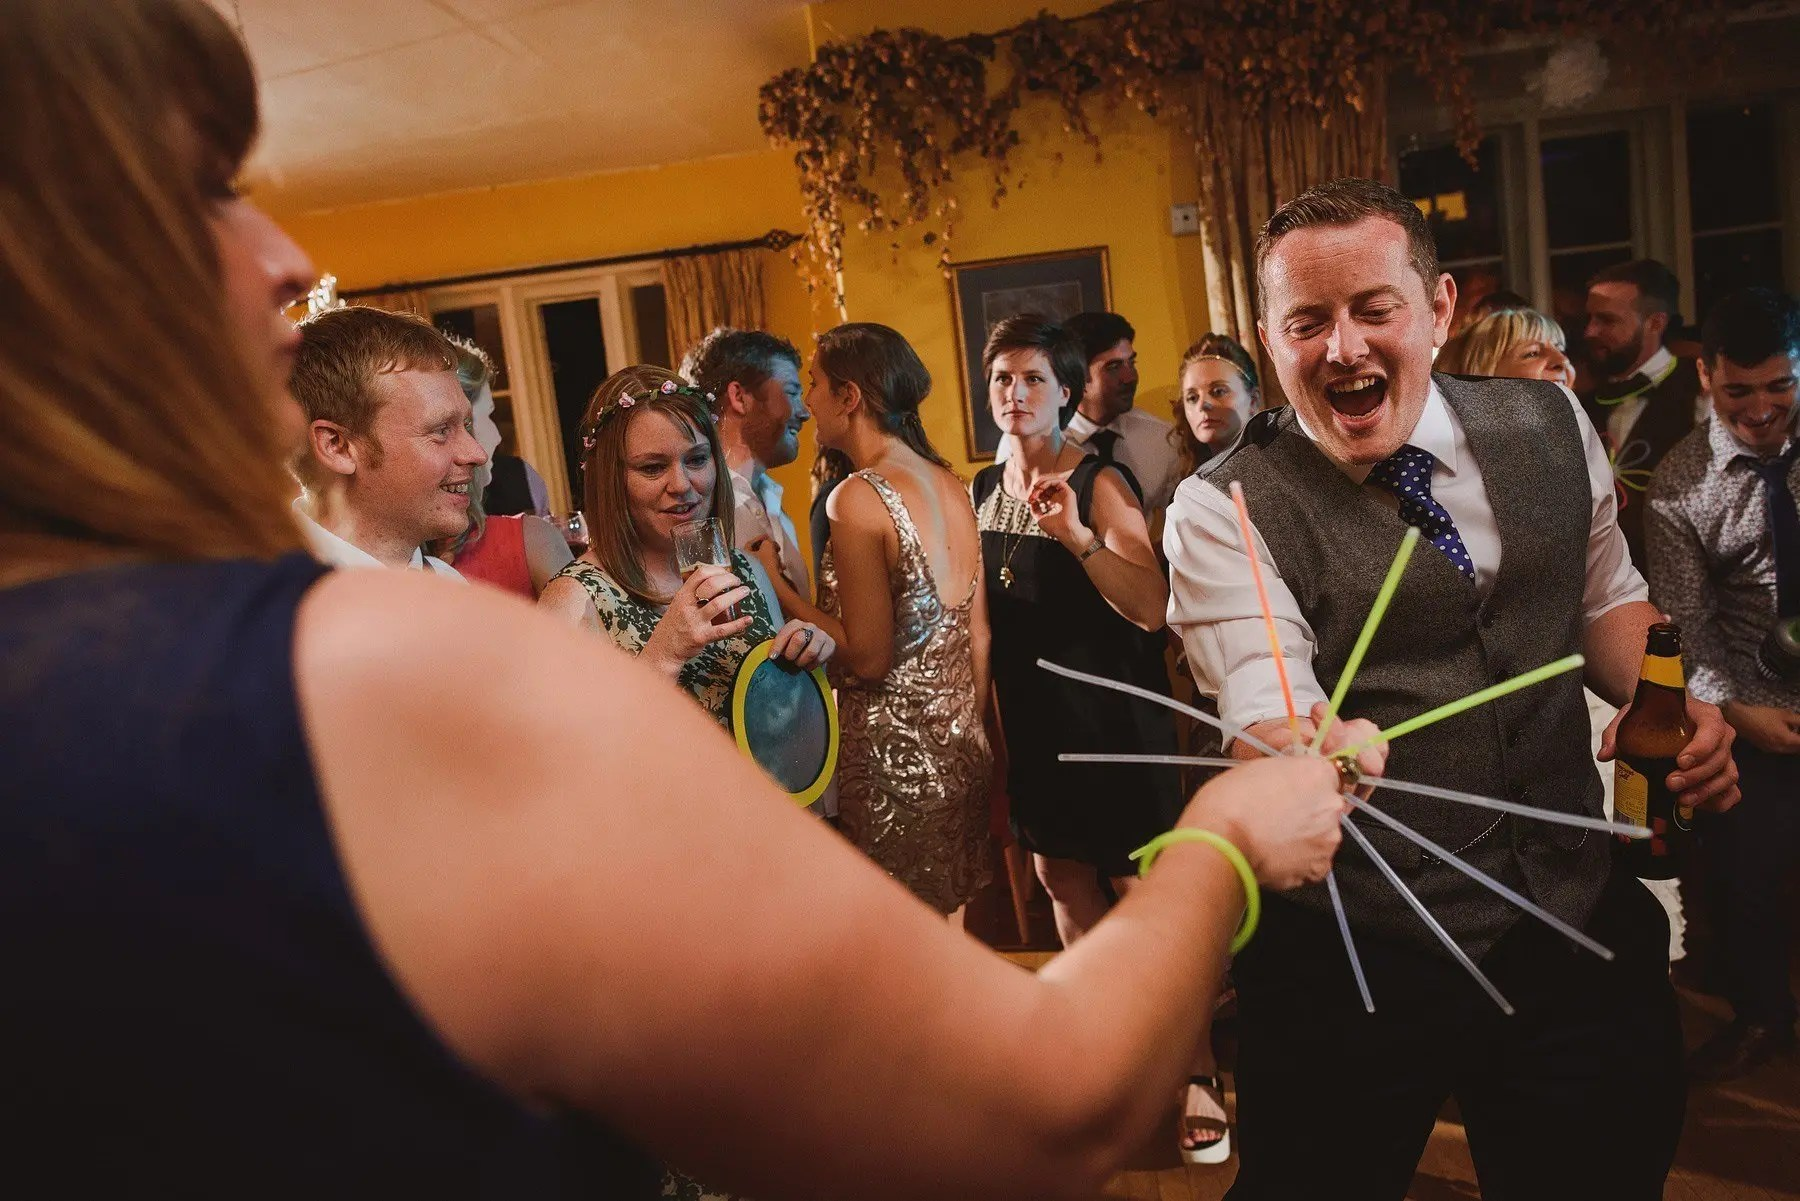 glowsticks on the dancefloor at a wedding